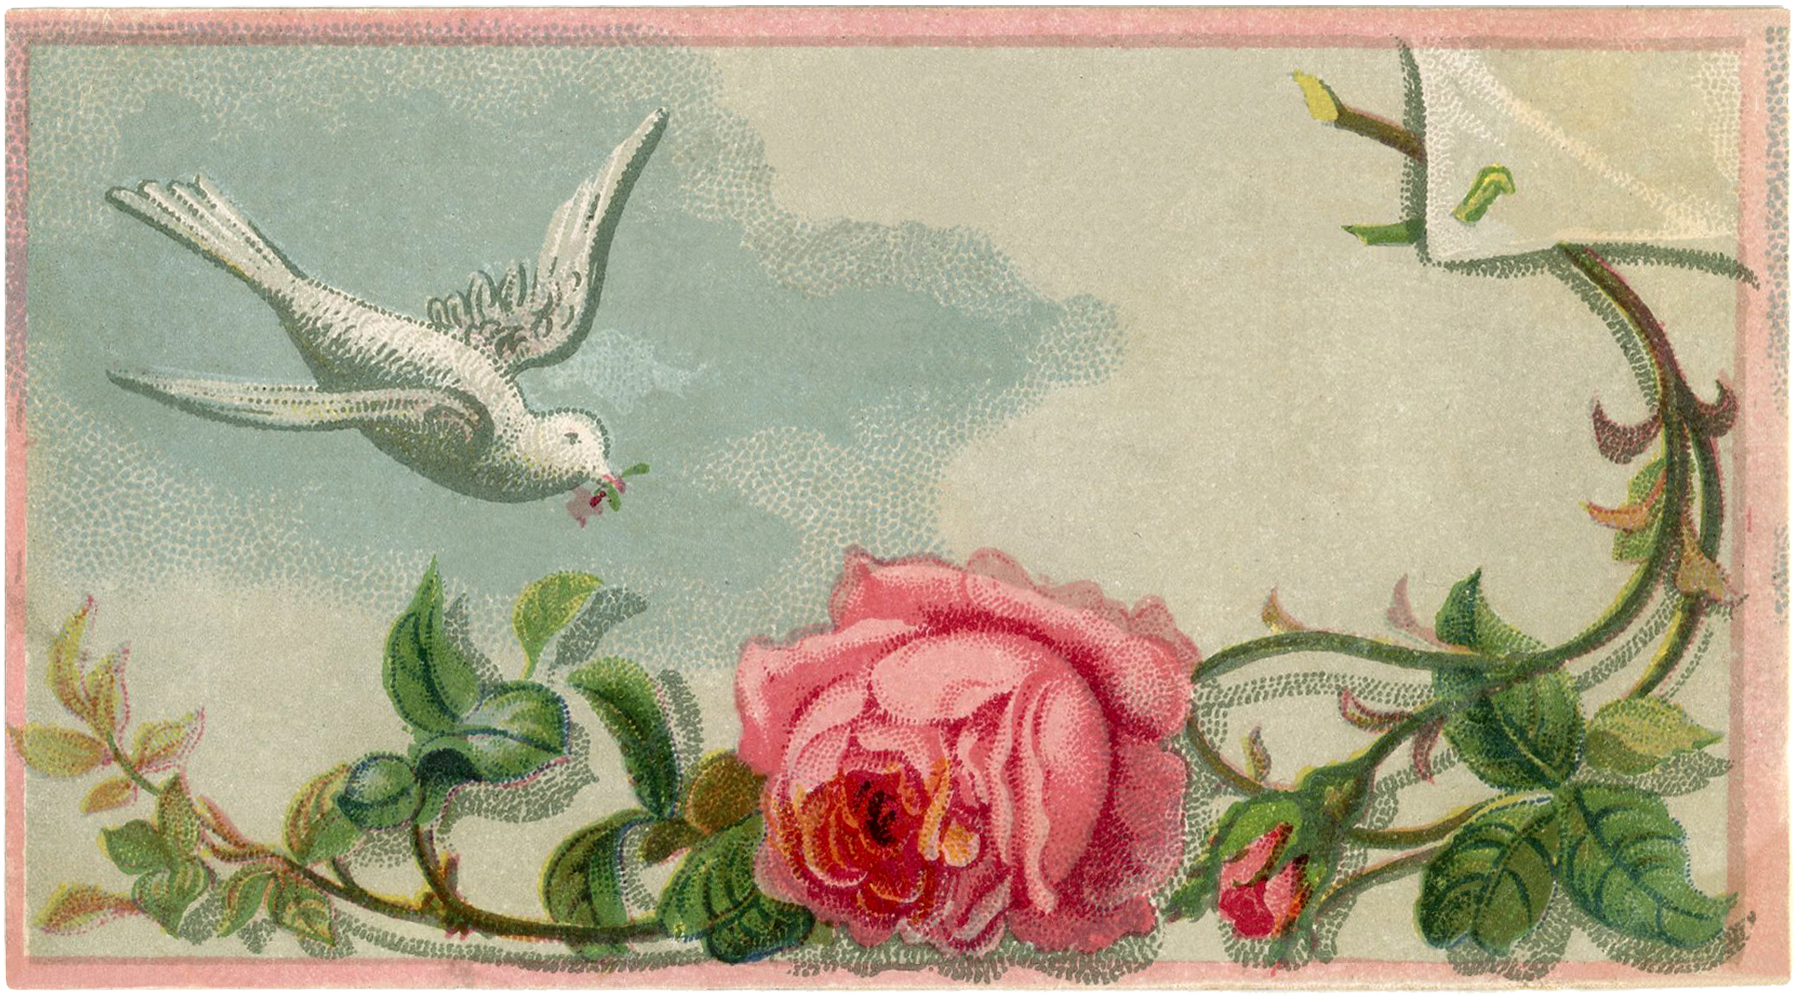 http://thegraphicsfairy.com/wp-content/uploads/2015/05/Vintage-Bird-with-Rose-Image-GraphicsFairy.jpg